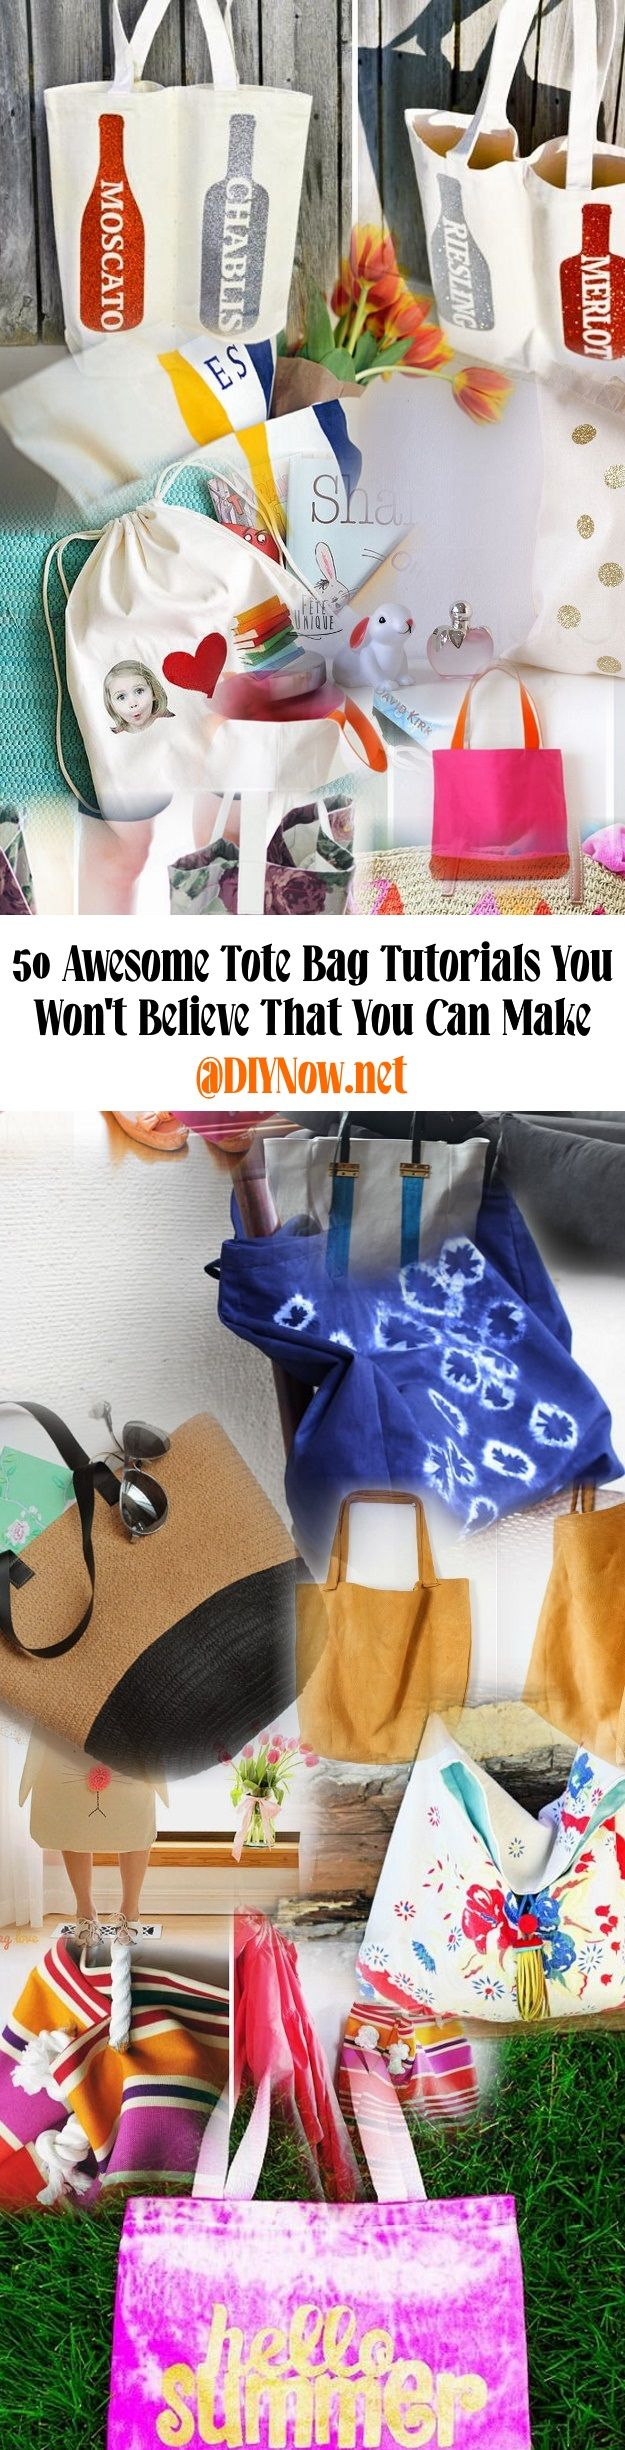 50 Awesome Tote Bag Tutorials You Wont Believe That You Can Make